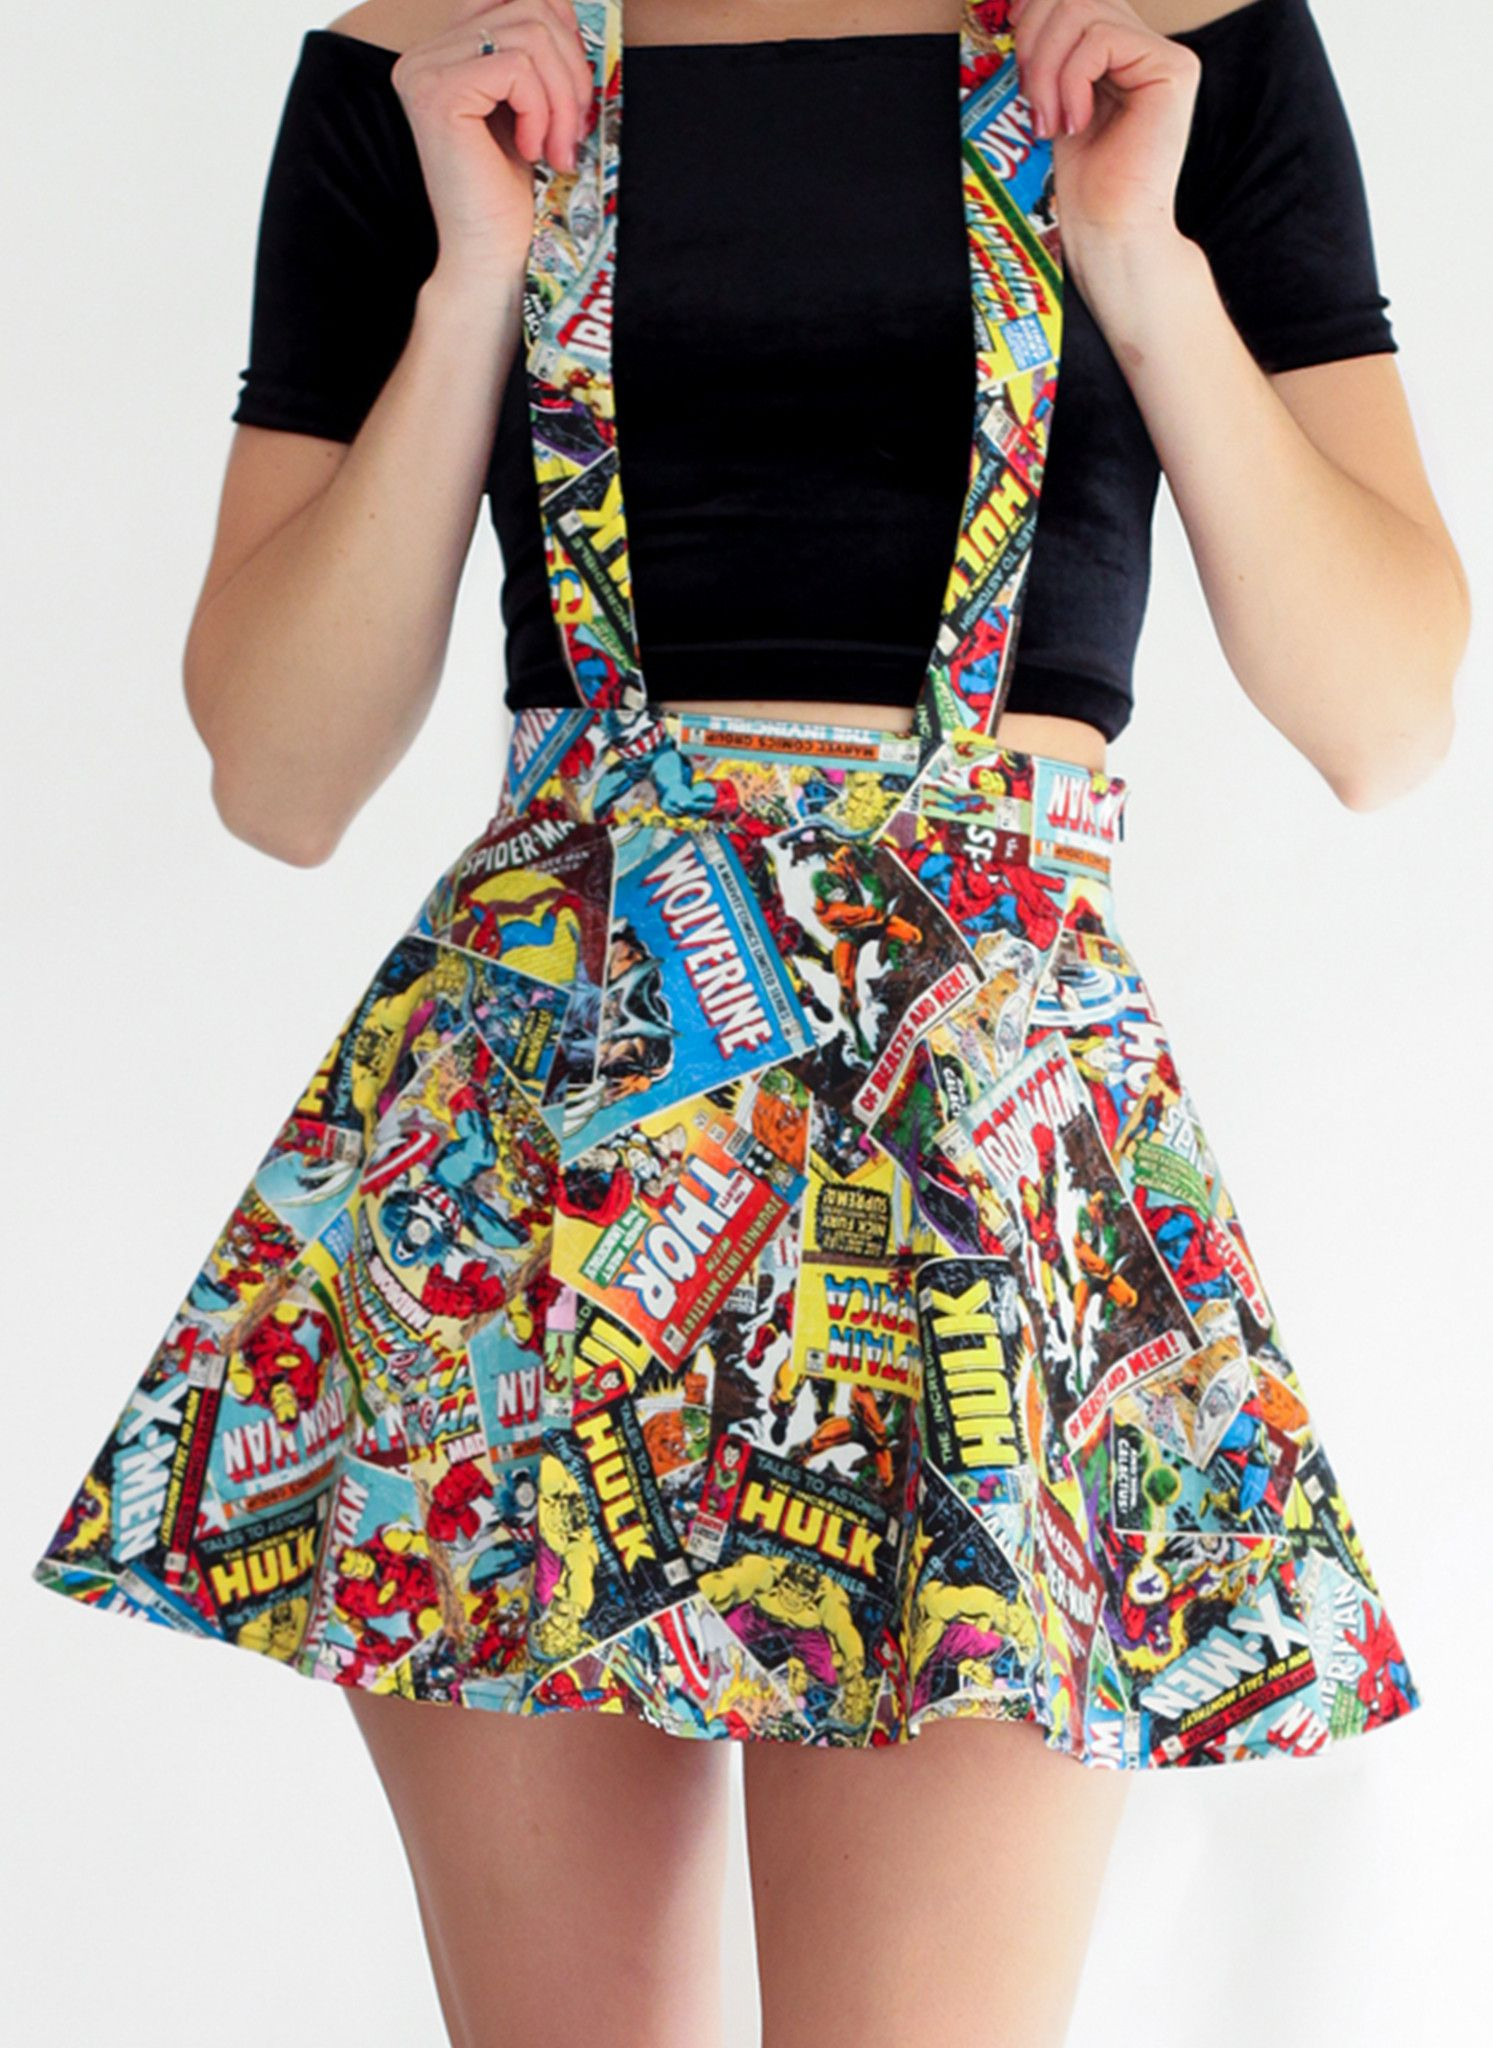 marvel suspender skater skirt marvel pinterest kleidung sch ne kleidung und kleider. Black Bedroom Furniture Sets. Home Design Ideas